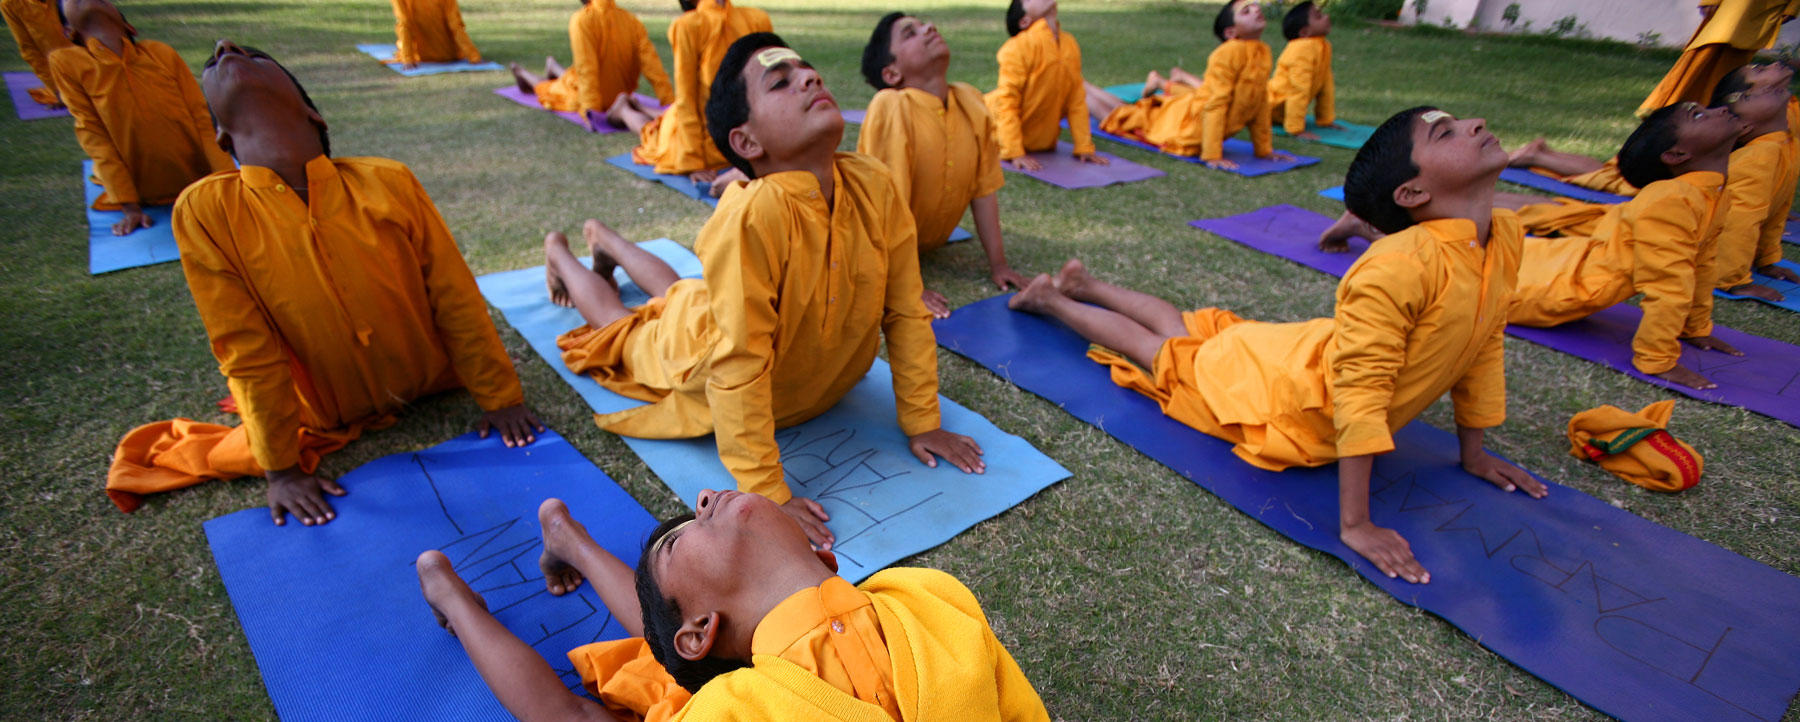 Boys at daily yoga session at Gurukul school of Parmarth Niketan in Rishikesh, India.